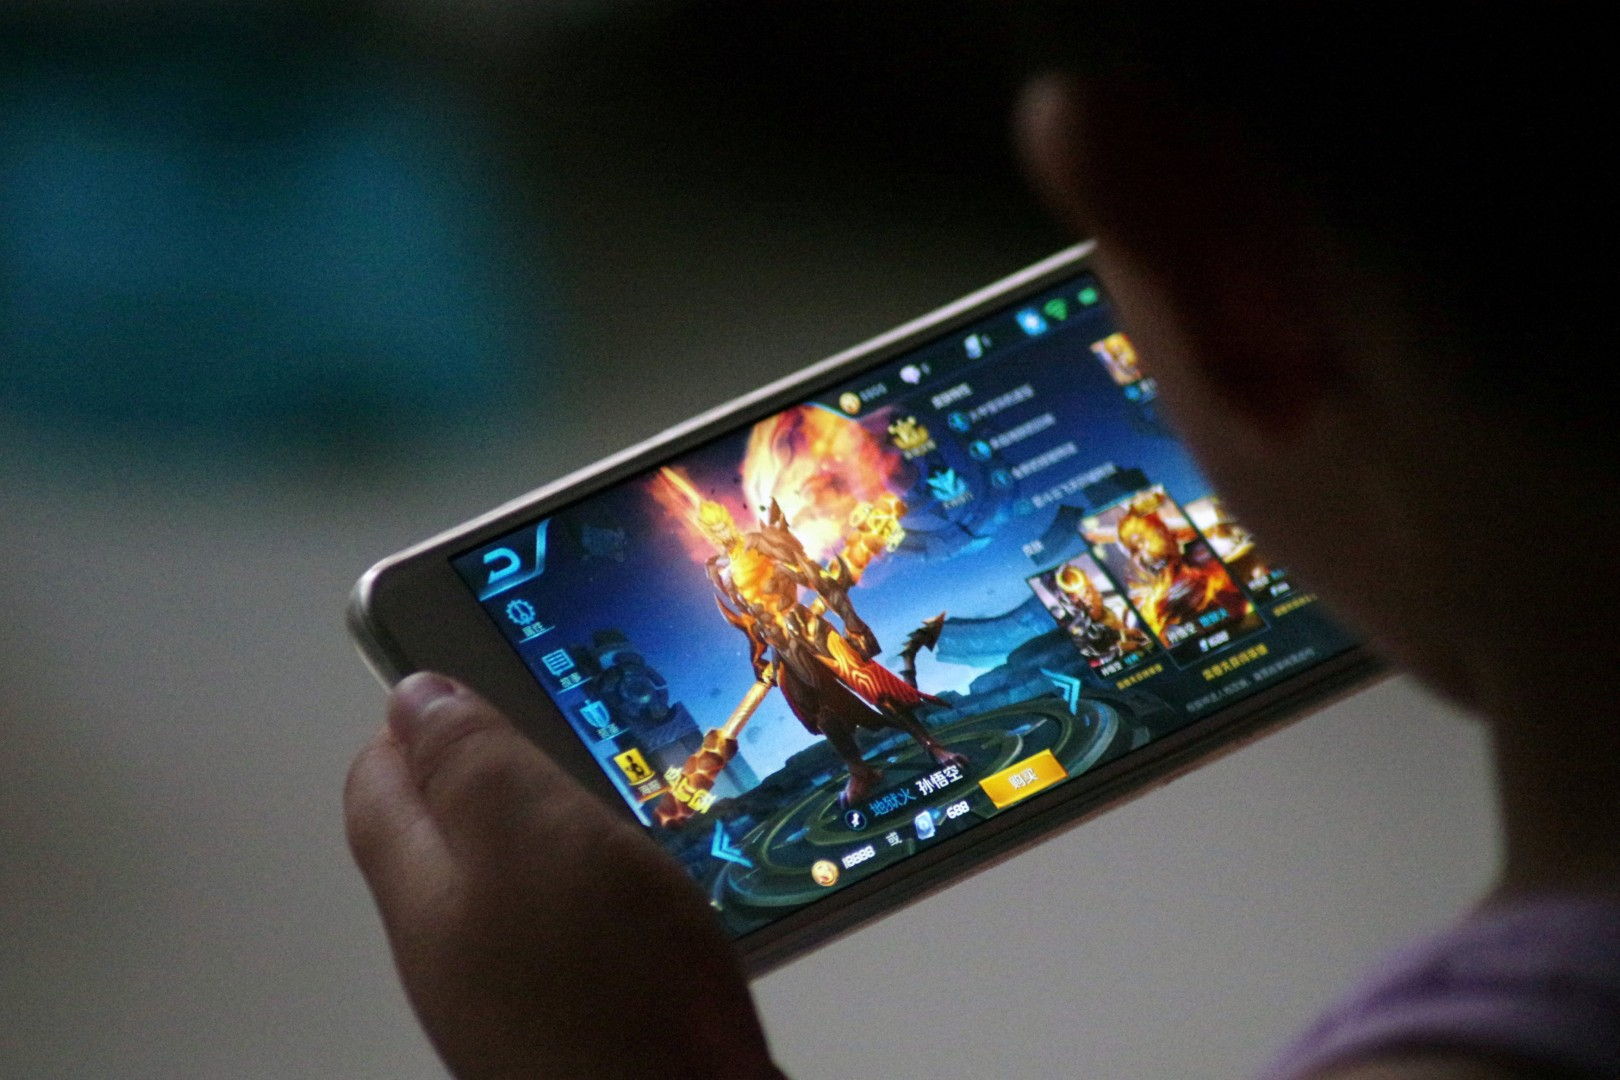 This addictive mobile game hooked 100 million users in just two